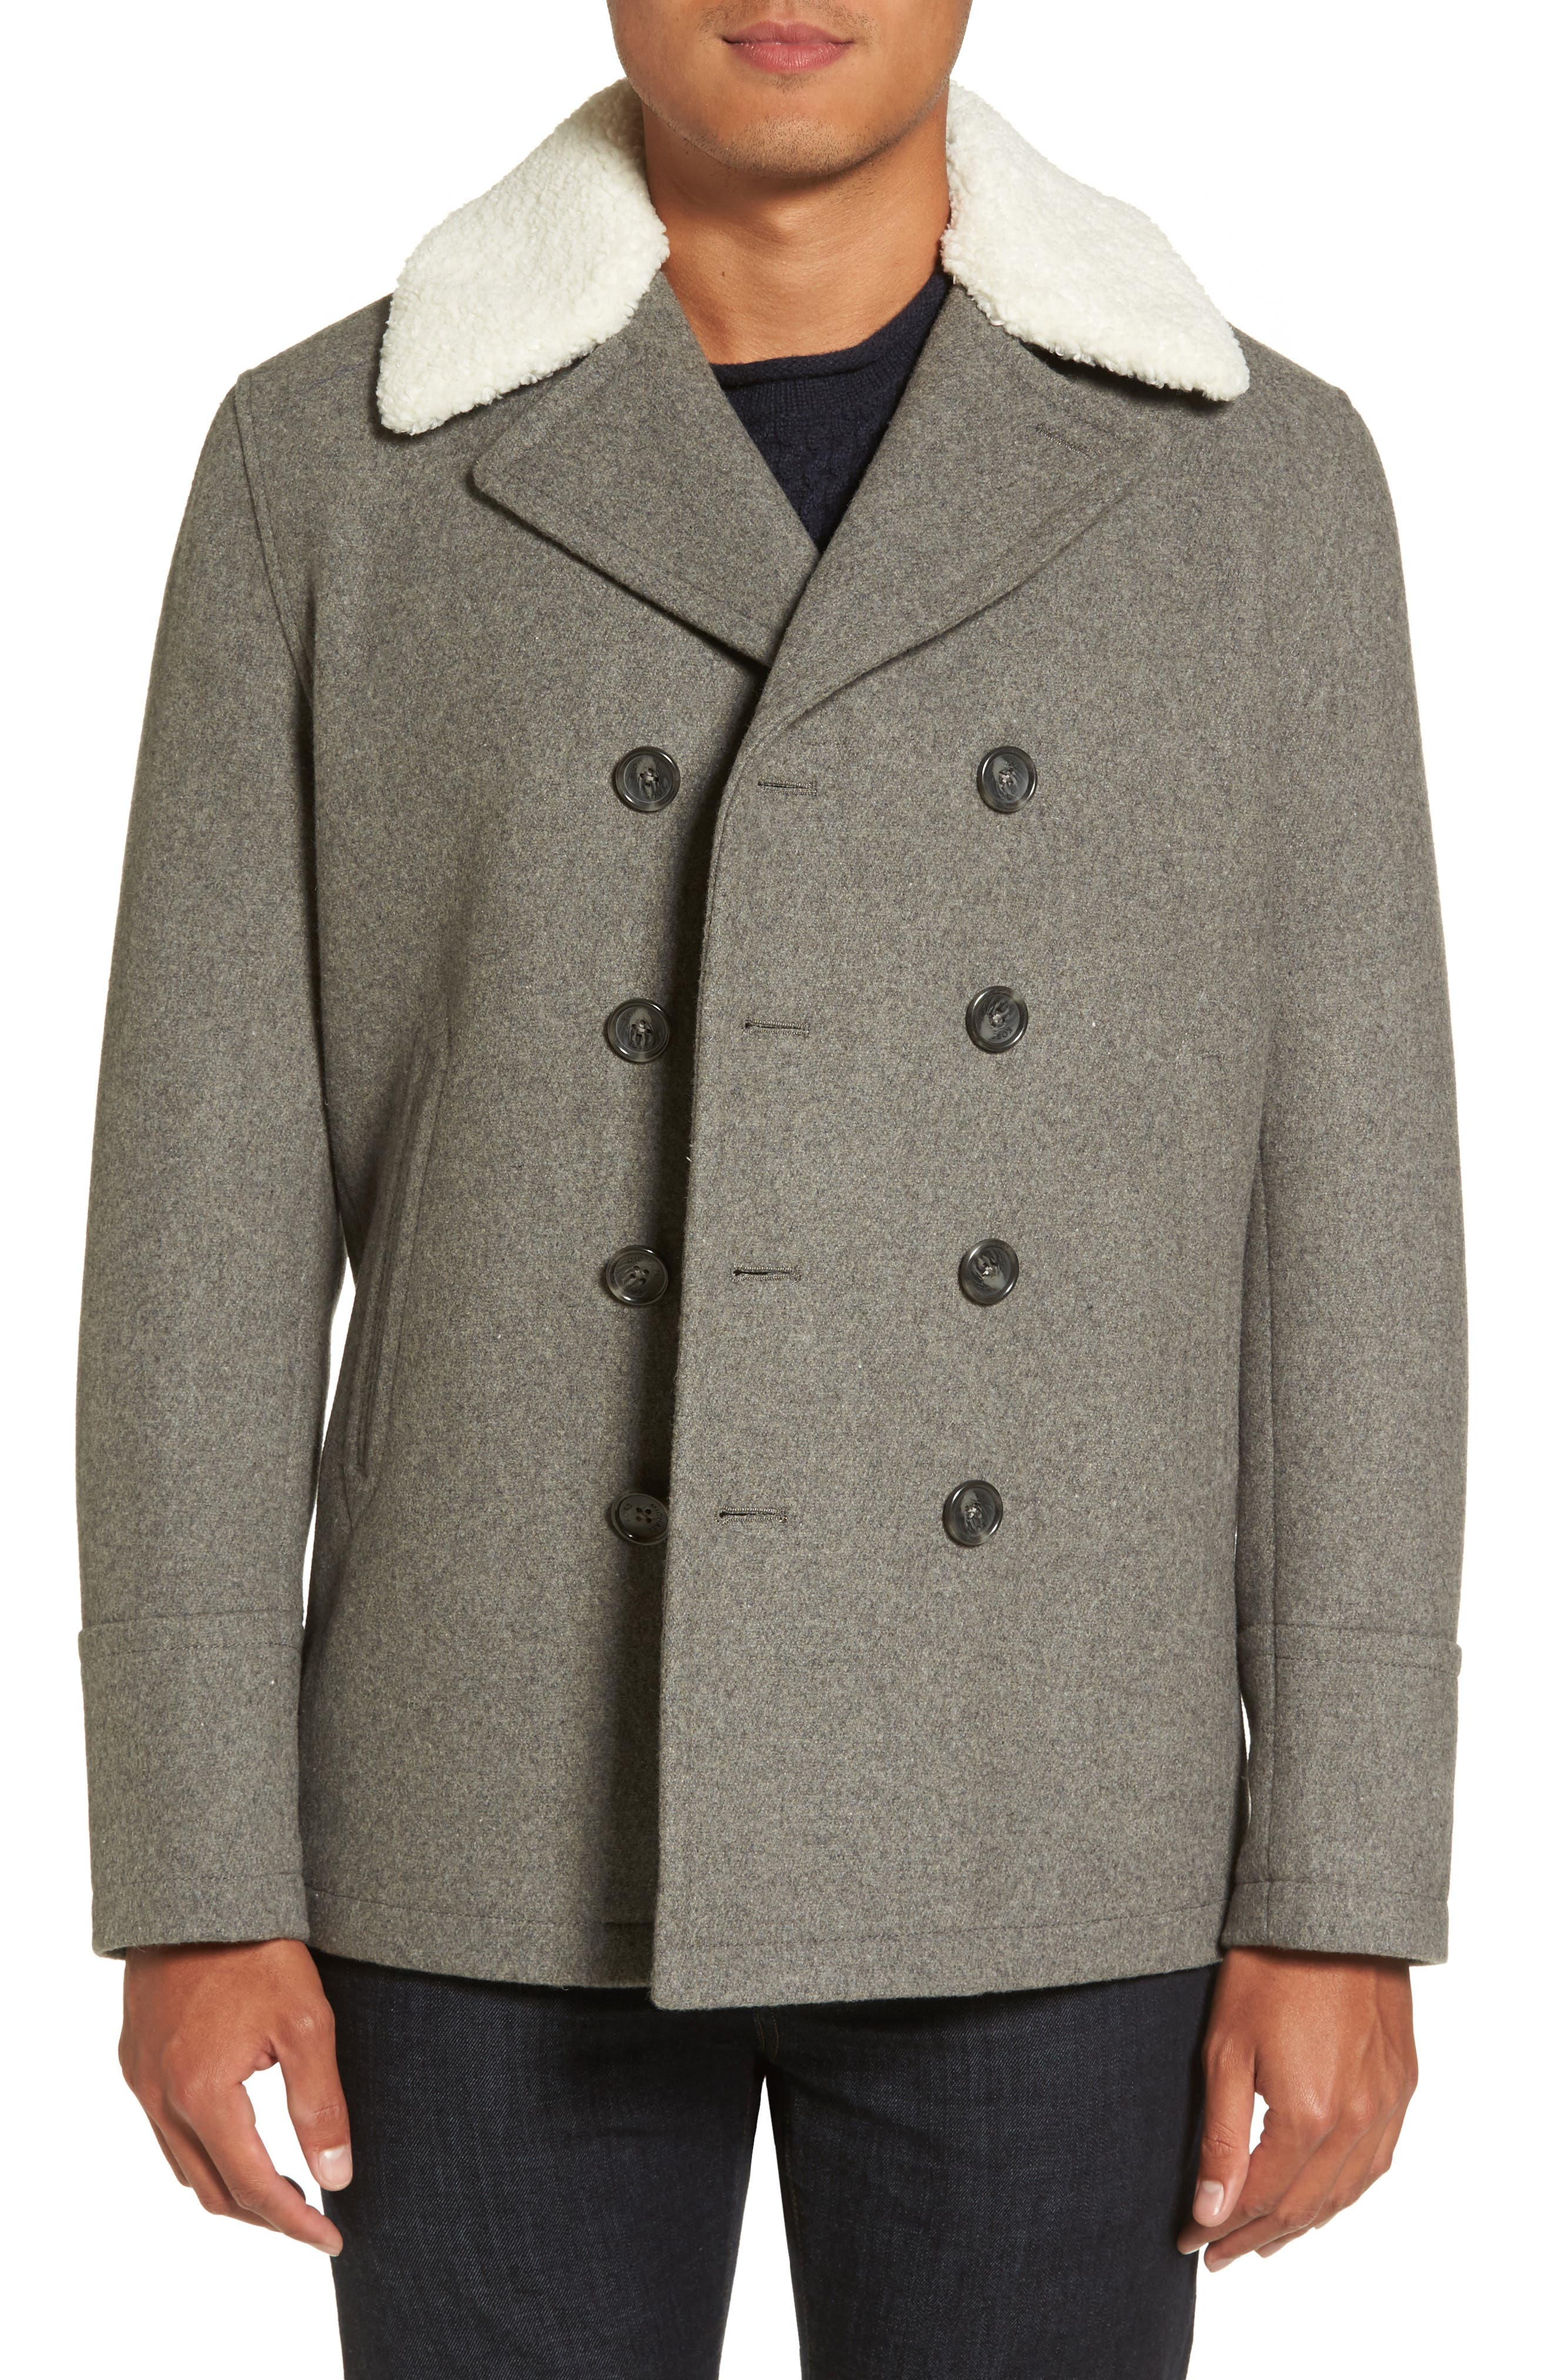 Alternate Image 1 Selected - Michael Kors Peacoat with Faux Shearling Collar